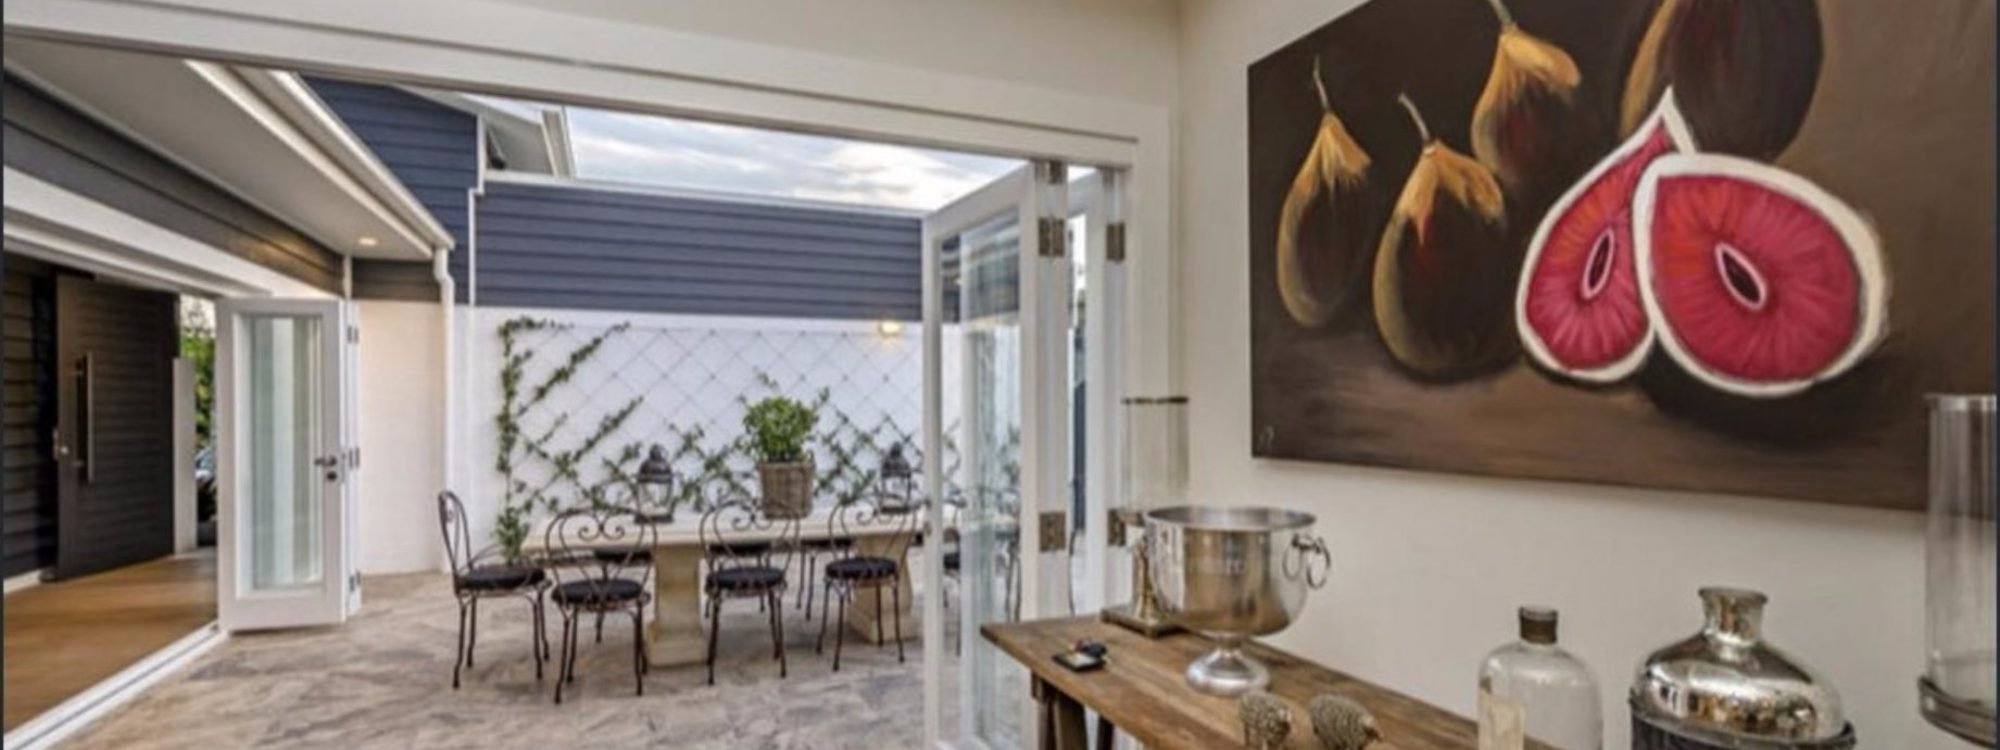 Casa Royale - Broadbeach Waters - Outdoor dining area